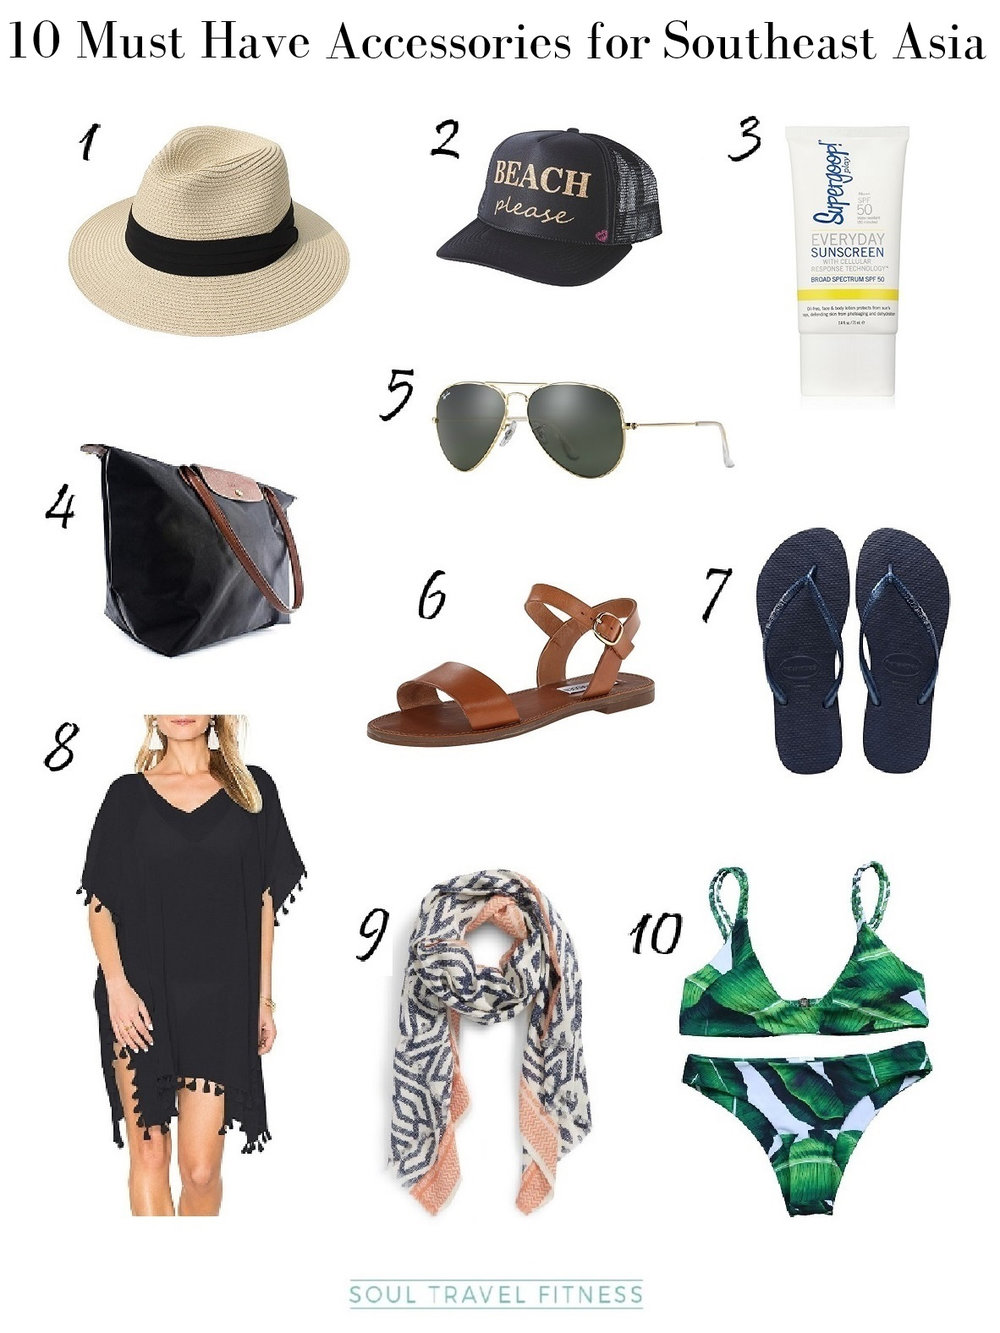 10_Must_Have_Accessories_for_Southeast_Asia_v7.jpg